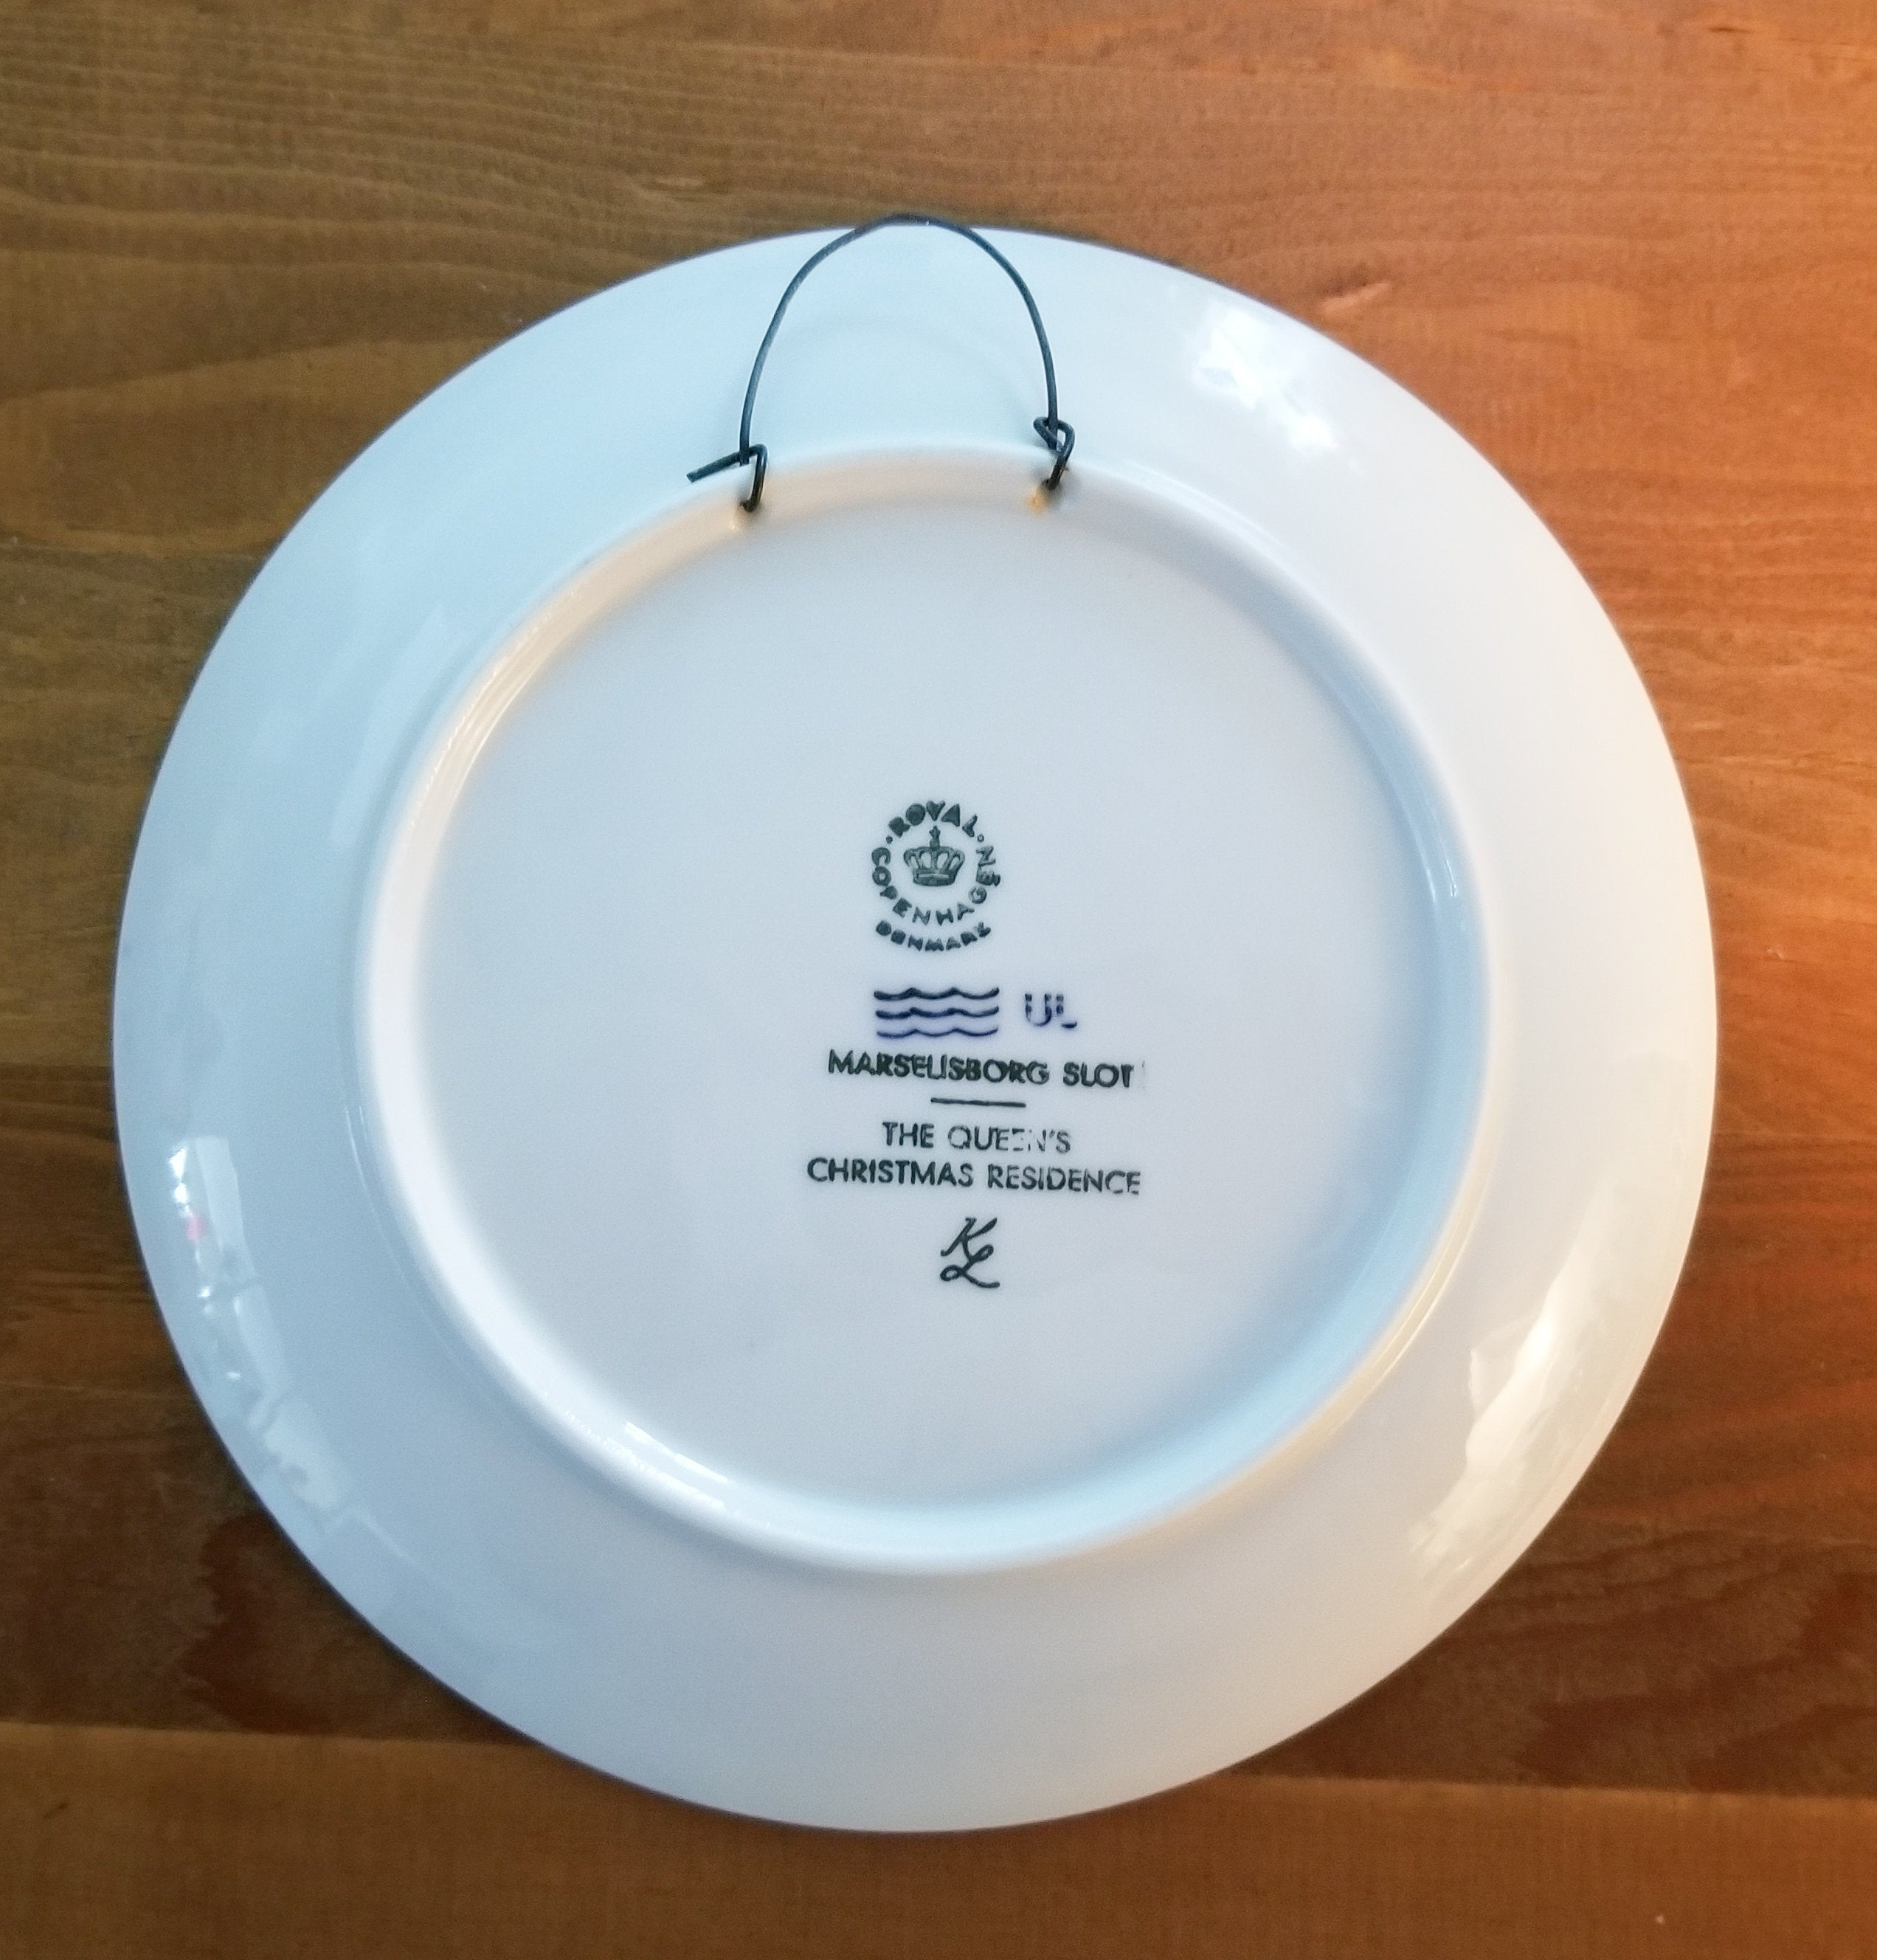 Vintage Royal Copenhagen Porcelain Christmas Plate Jule After 1975 The Queens Christmas Residence